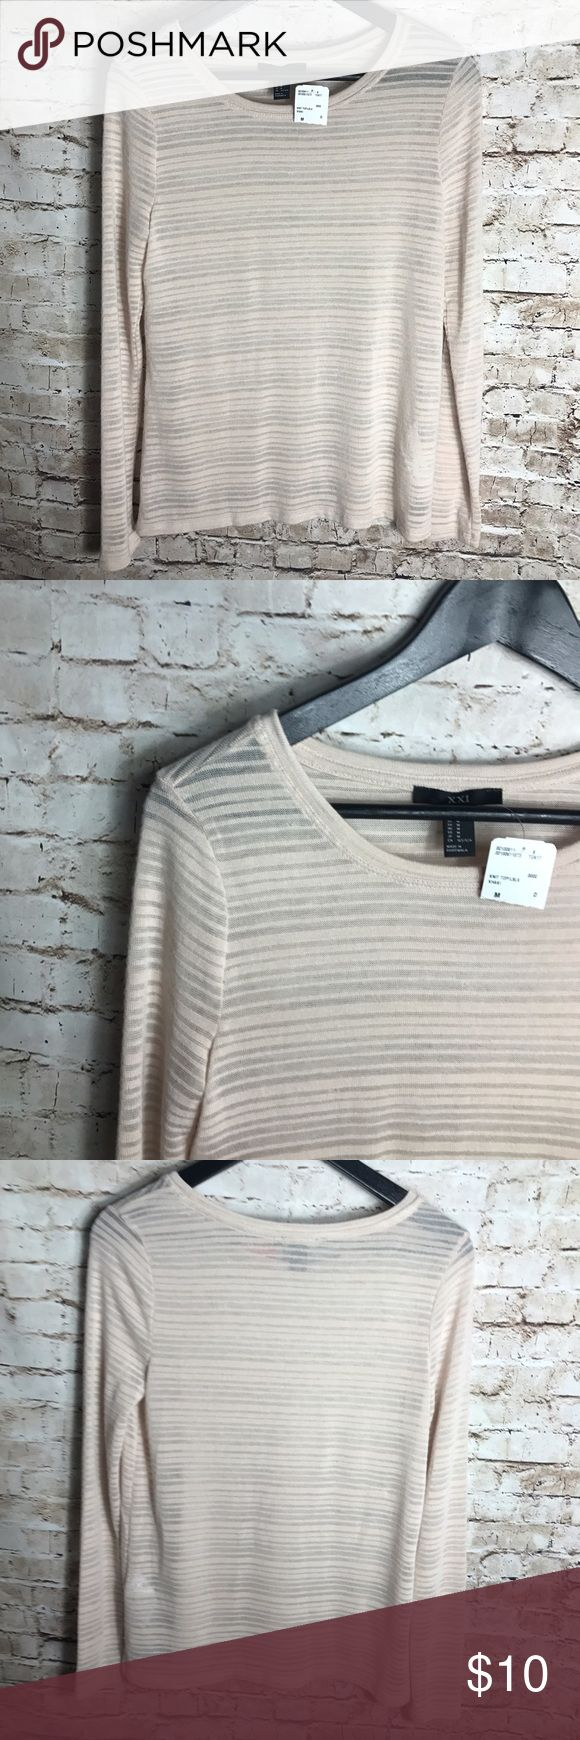 """✨Forever 21 beige long sleeve top✨ Forever 21 womens size M beige Log sleeve knit top  new with tag   Laying Flat from armpit to armpit 16"""" Laying flat full length 24"""" Forever 21 Tops Tees - Long Sleeve"""